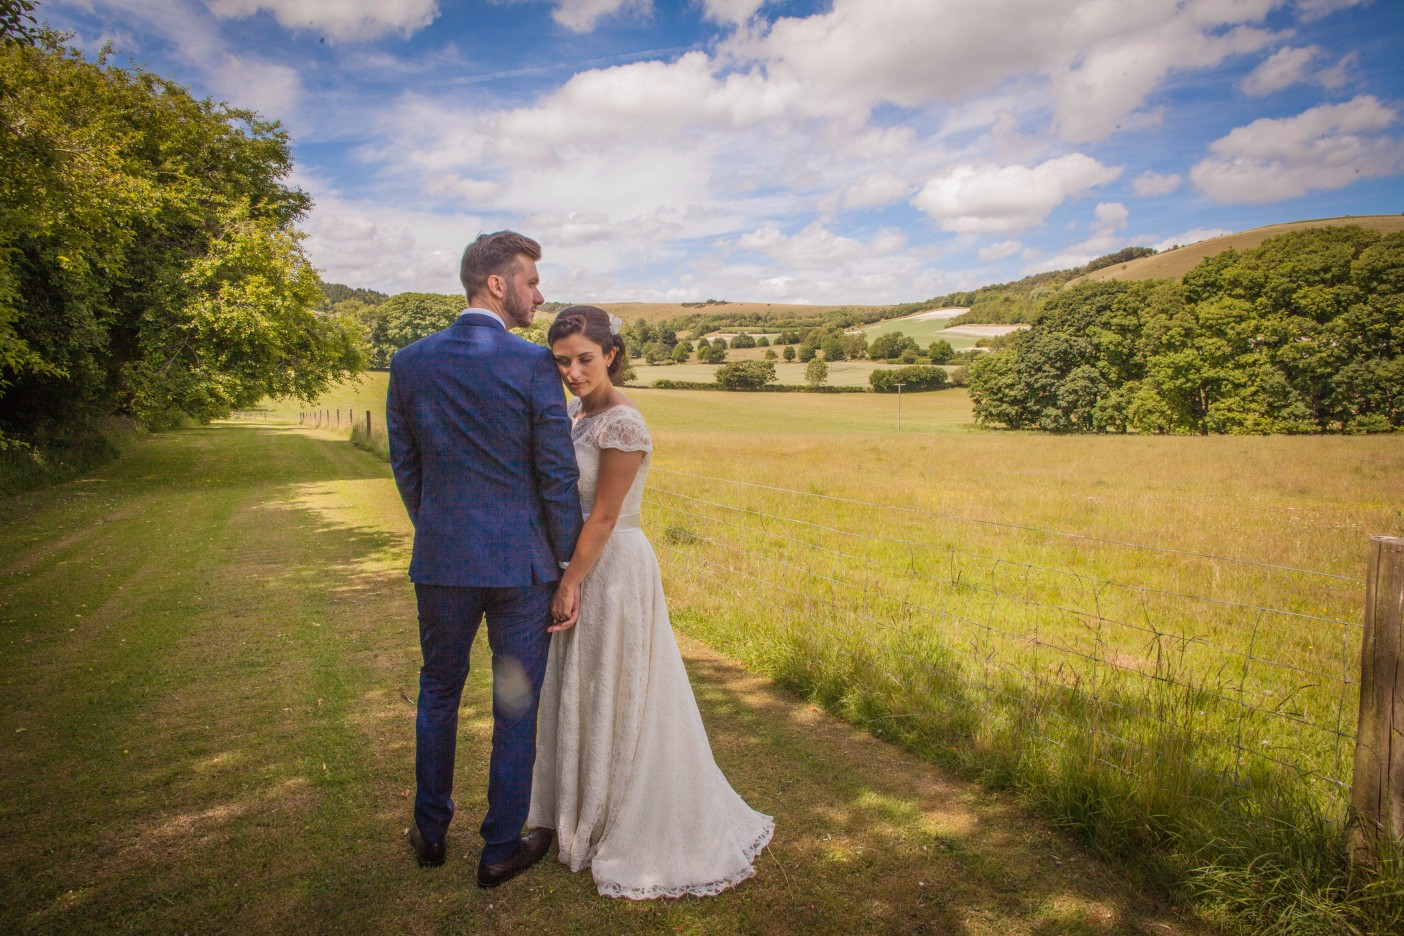 A Beautiful Wedding Venue In The Magical Valley Of Combe Berkshire